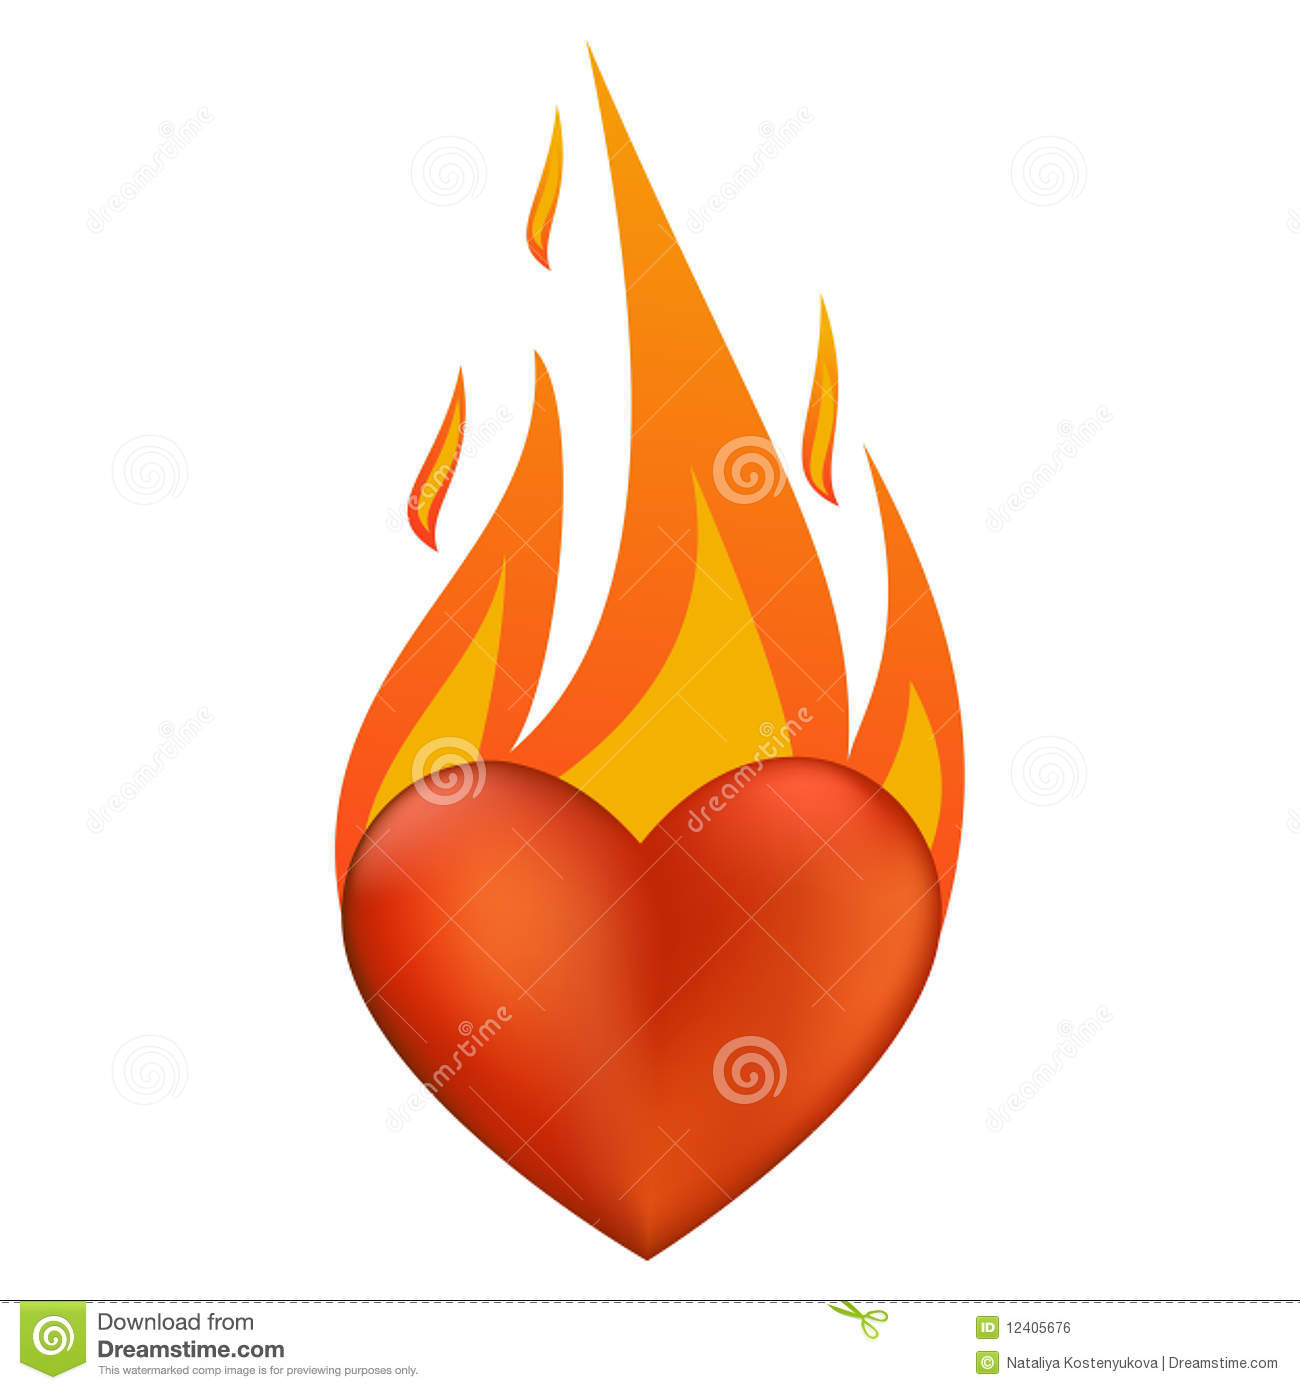 90151c2c2117 Flaming heart stock vector. Illustration of love